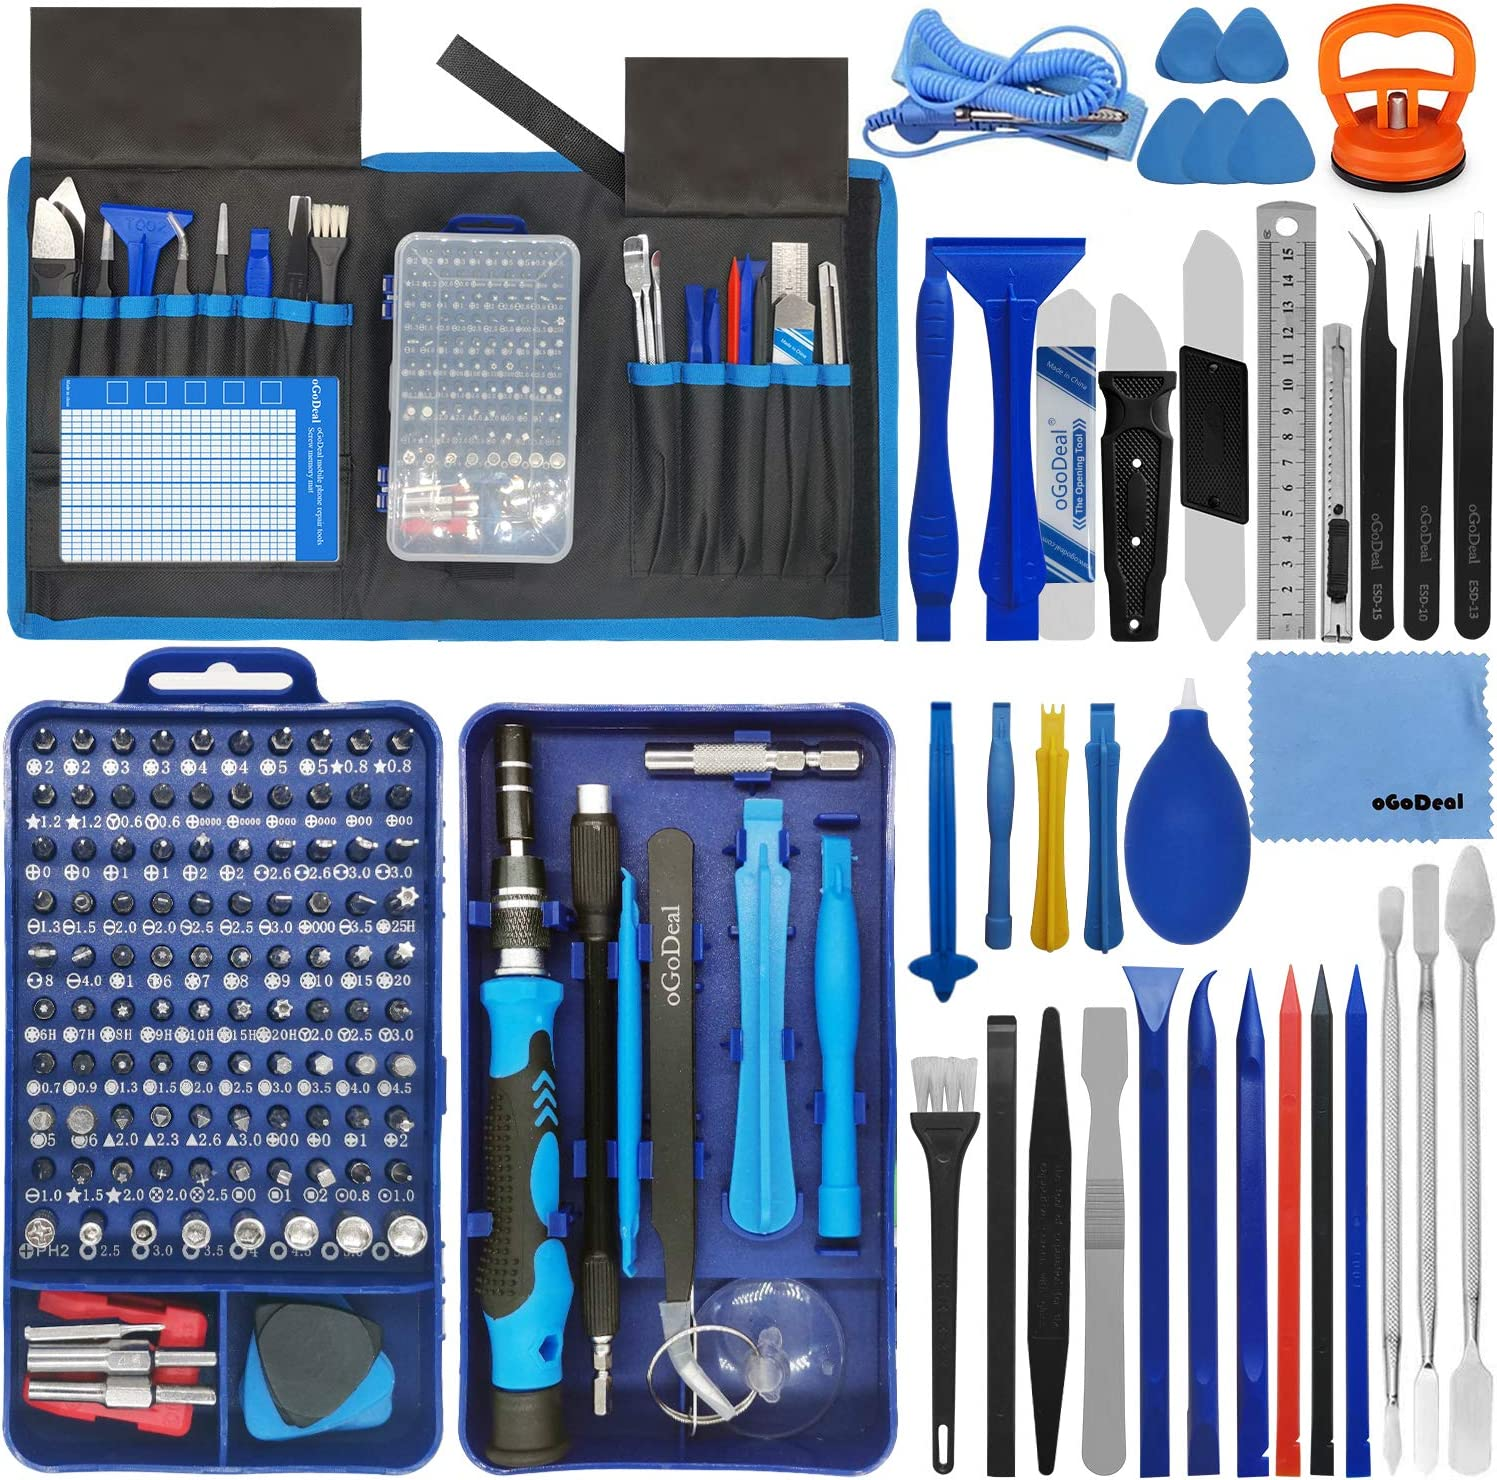 oGoDeal 155 in 1 Precision Screwdriver Set Professional Electronic Repair Tool Kit for Computer, Eyeglasses, iPhone, Laptop, PC, Tablet,PS3,PS4,Xbox,Macbook,Camera,Watch,Toy,Jewelers,Drone Blue